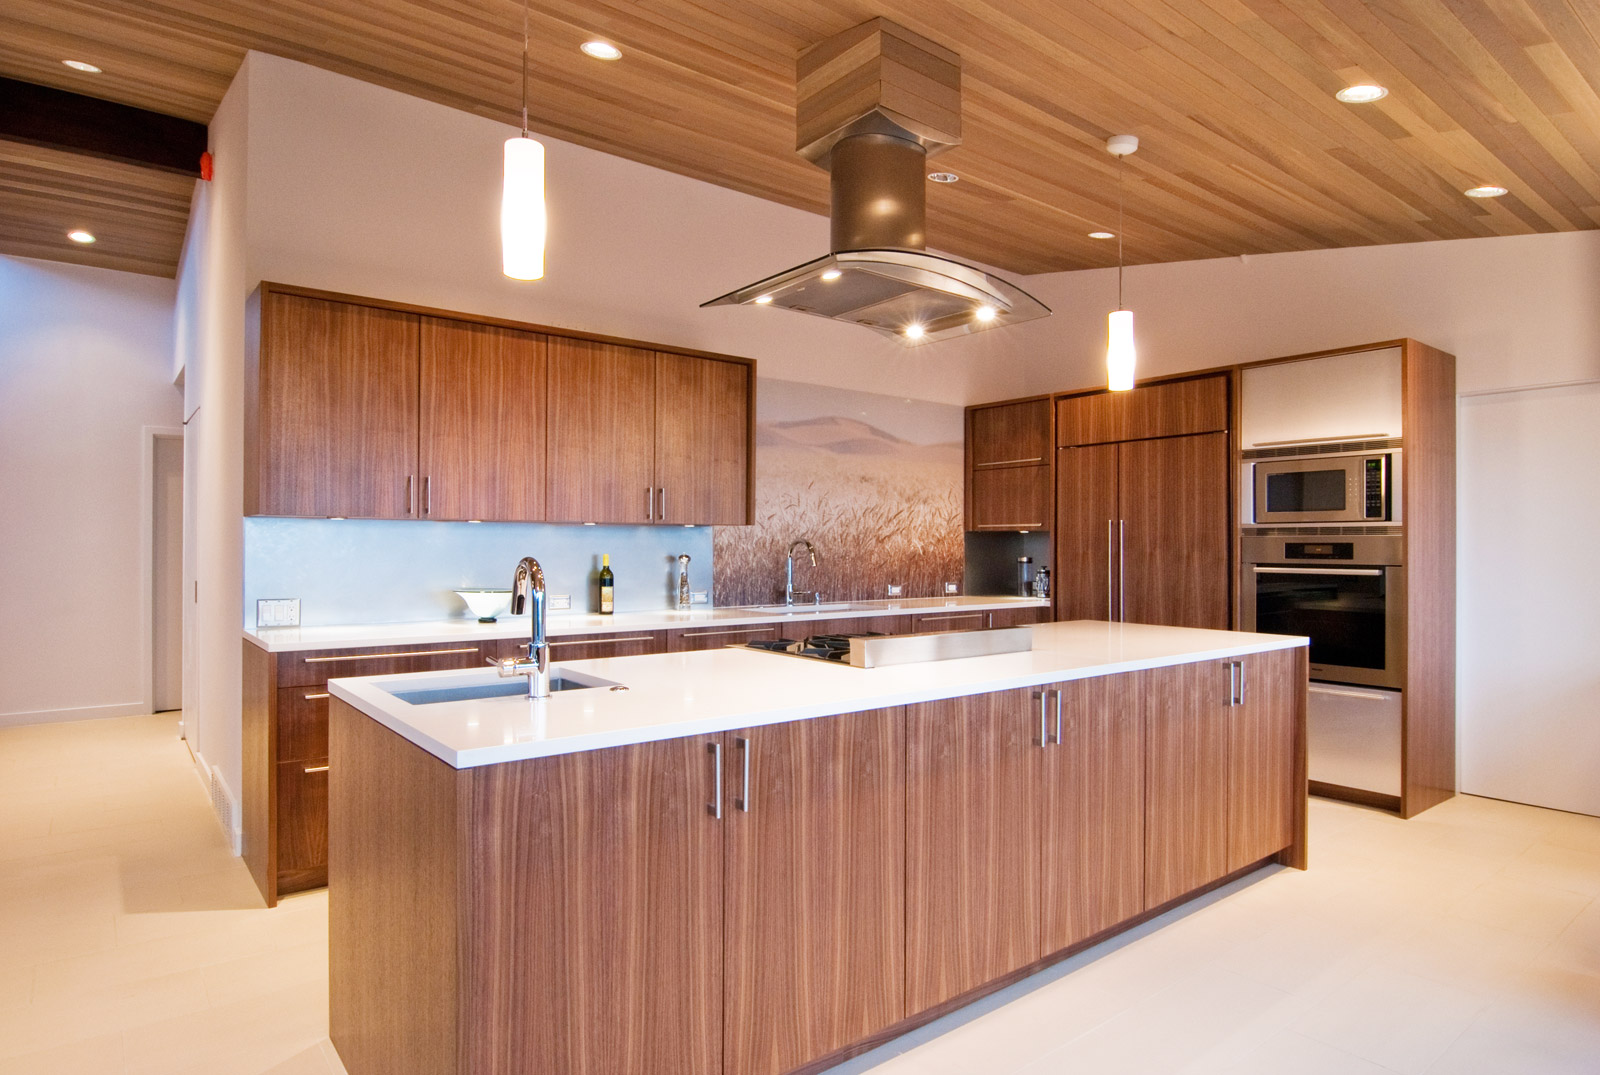 The Multiple Roles of the Kitchen Island BUILD Blog #794527 1600 1075